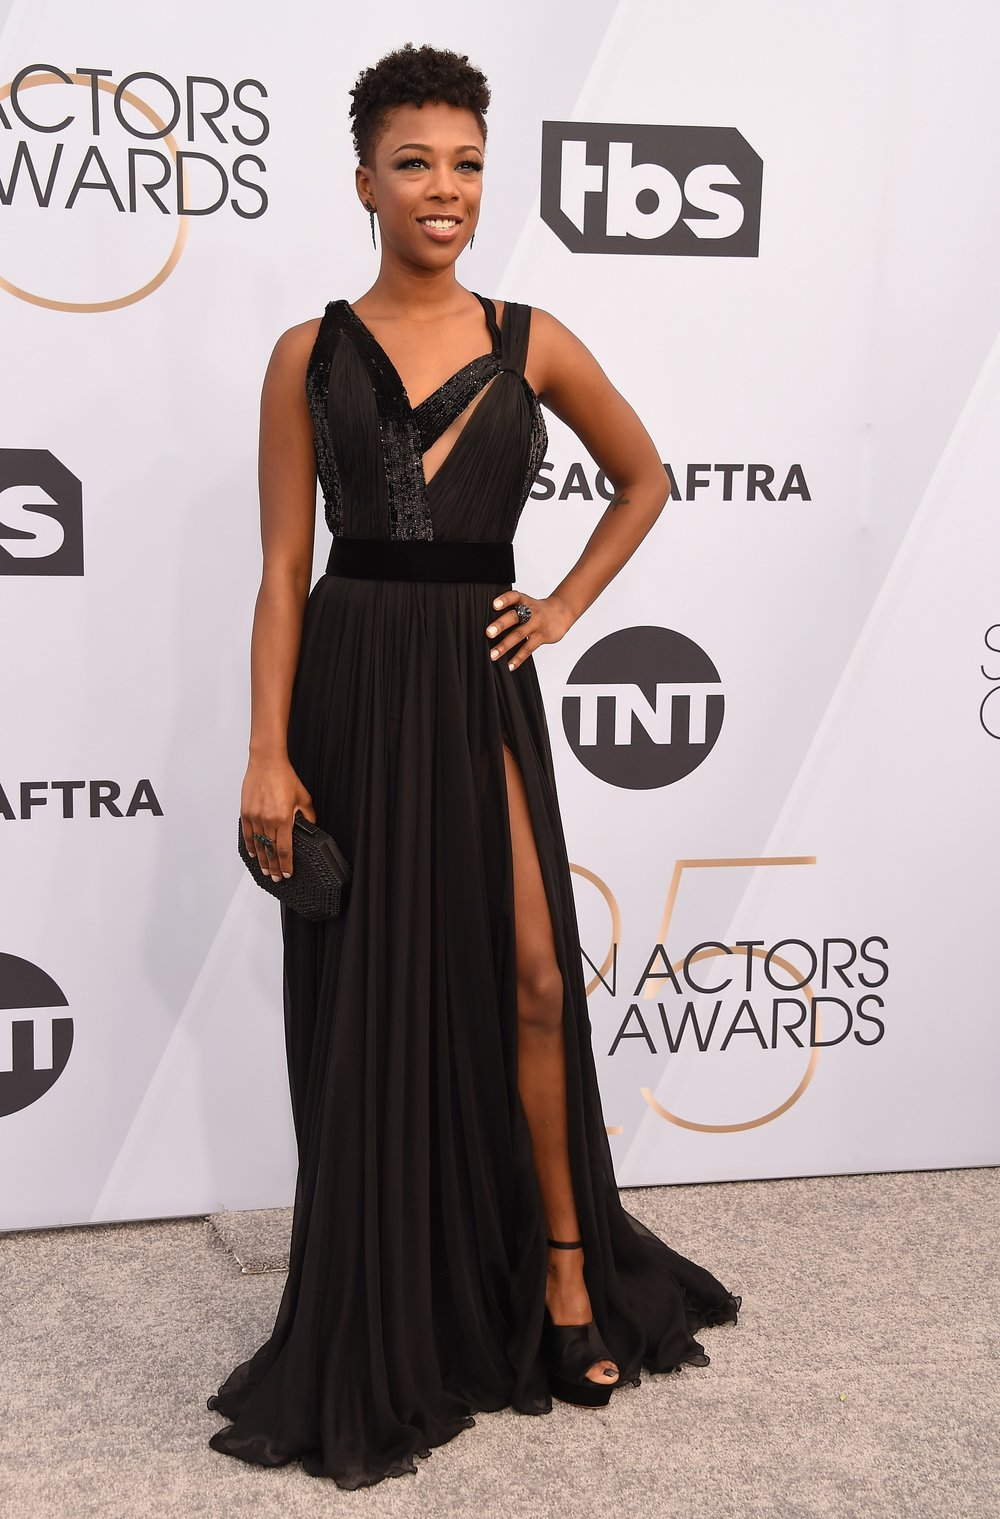 SAG AWARDS 2019 RED CARPET SAMIRA WILEY.jpg